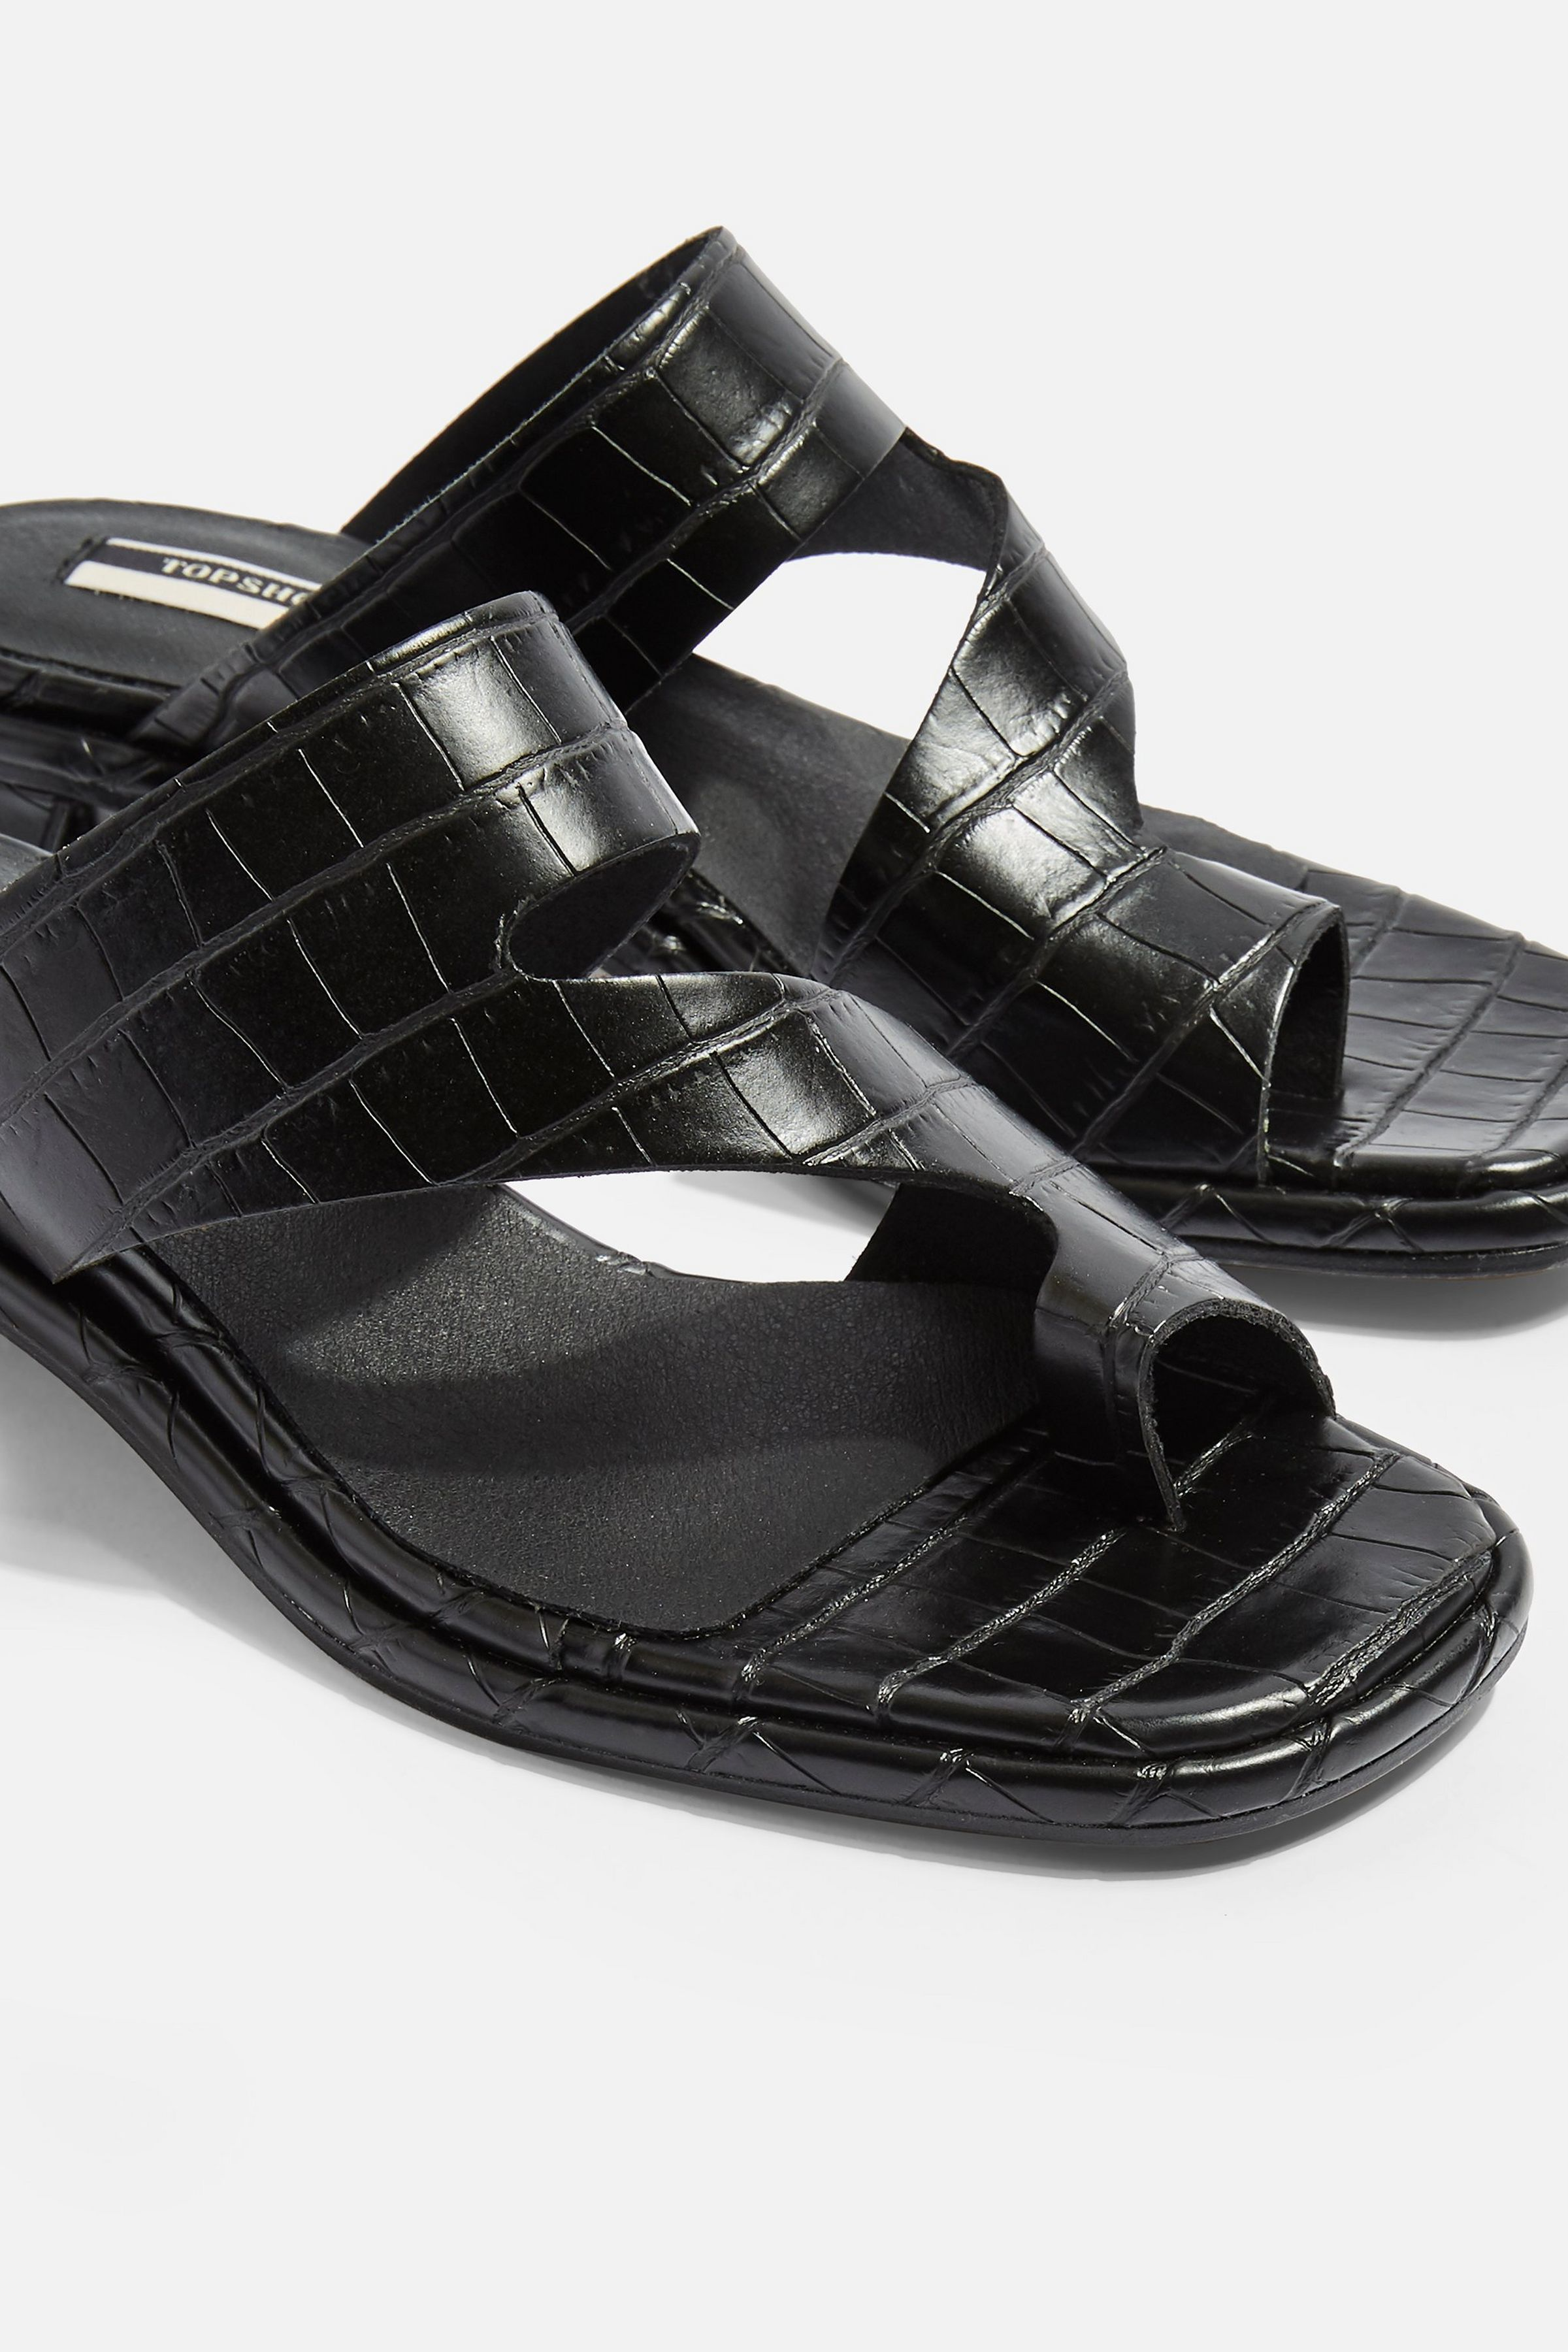 NOAH Vegan Black Crocodile Low Toe Loop Sandals £49. Source: Topshop.com